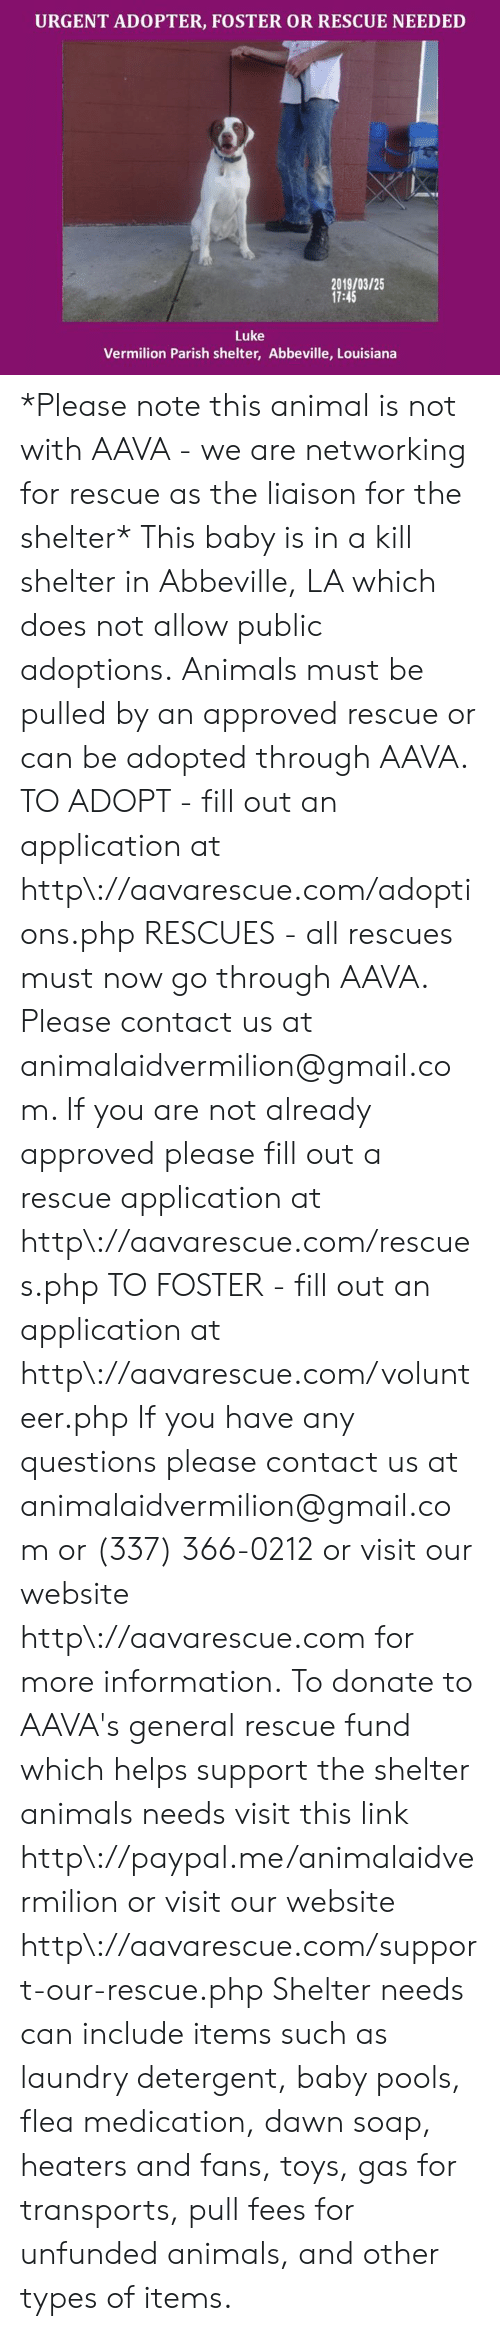 any questions: URGENT ADOPTER, FOSTER OR RESCUE NEEDED  91800125  2019/03/25  17:45  Luke  Vermilion Parish shelter, Abbeville, Louisiana *Please note this animal is not with AAVA - we are networking for rescue as the liaison for the shelter* This baby is in a kill shelter in Abbeville, LA which does not allow public adoptions. Animals must be pulled by an approved rescue or can be adopted through AAVA.  TO ADOPT - fill out an application at http\://aavarescue.com/adoptions.php  RESCUES - all rescues must now go through AAVA. Please contact us at animalaidvermilion@gmail.com. If you are not already approved please fill out a rescue application at http\://aavarescue.com/rescues.php  TO FOSTER - fill out an application at http\://aavarescue.com/volunteer.php  If you have any questions please contact us at animalaidvermilion@gmail.com or (337) 366-0212 or visit our website http\://aavarescue.com for more information.  To donate to AAVA's general rescue fund which helps support the shelter animals needs visit this link http\://paypal.me/animalaidvermilion or visit our website http\://aavarescue.com/support-our-rescue.php Shelter needs can include items such as laundry detergent, baby pools, flea medication, dawn soap, heaters and fans, toys, gas for transports, pull fees for unfunded animals, and other types of items.